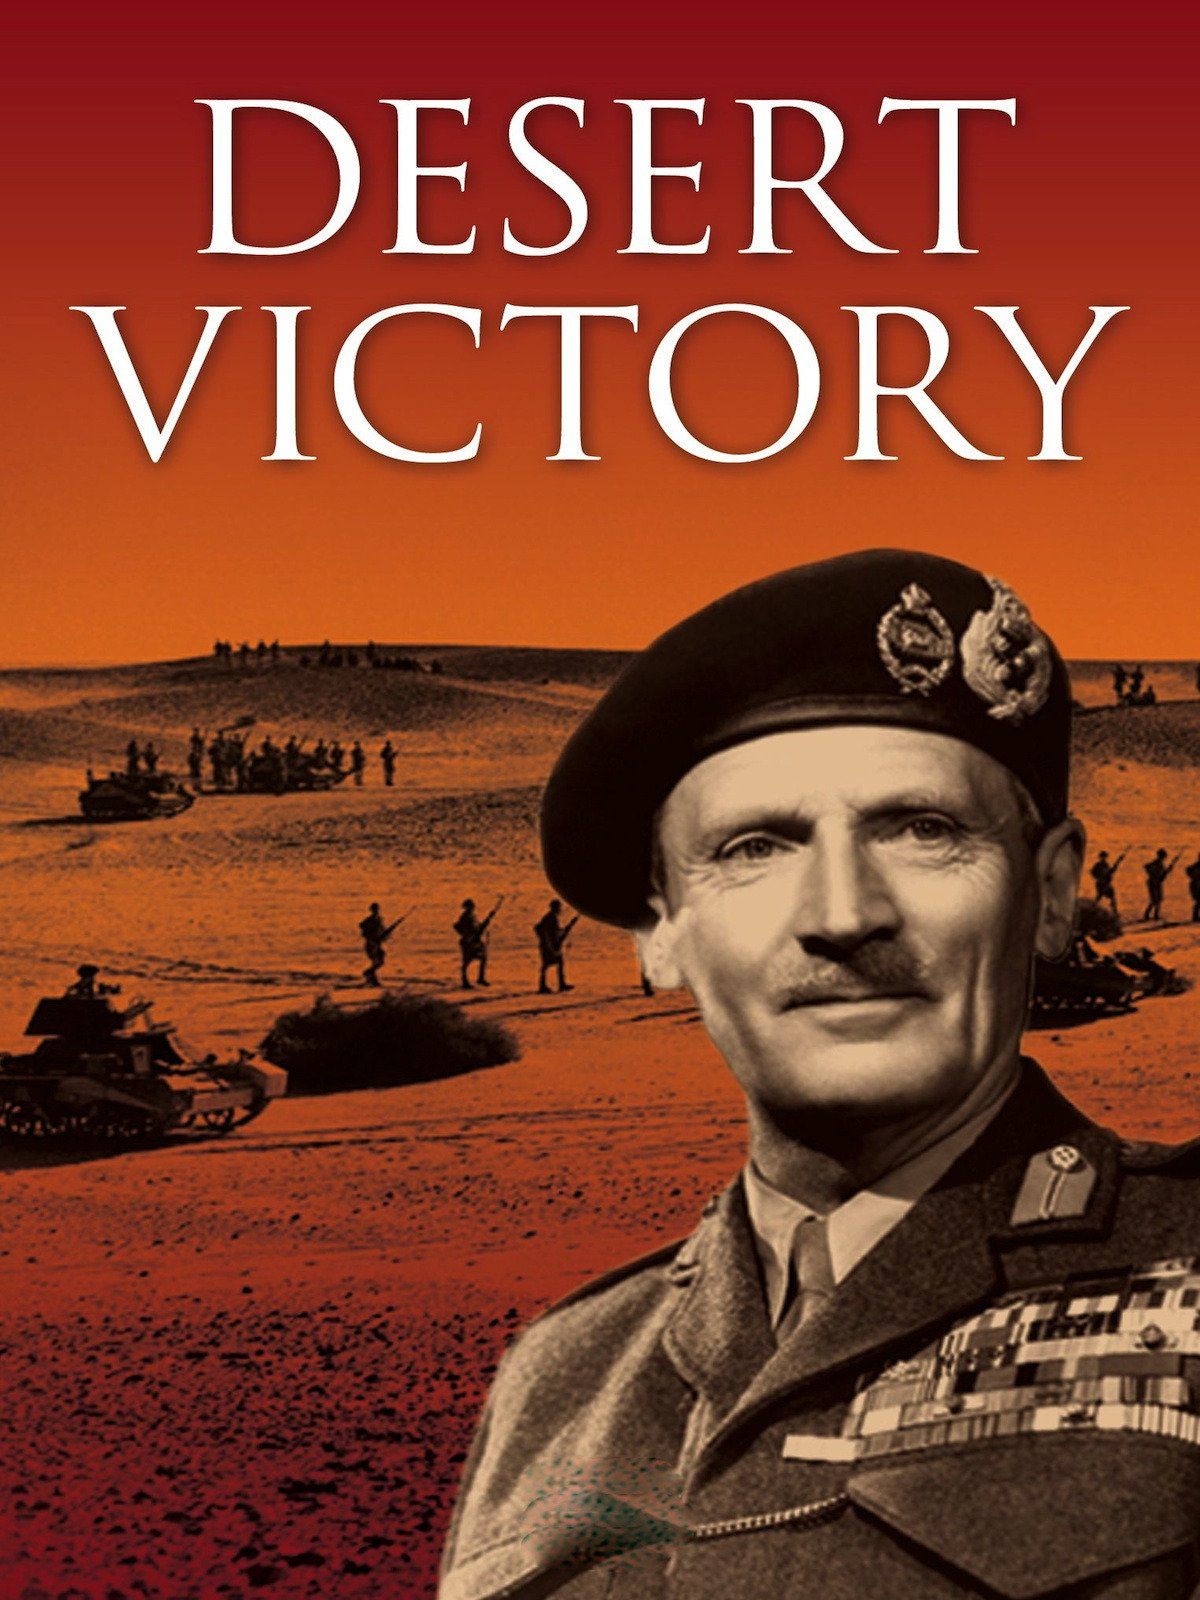 Desert Victory WWII